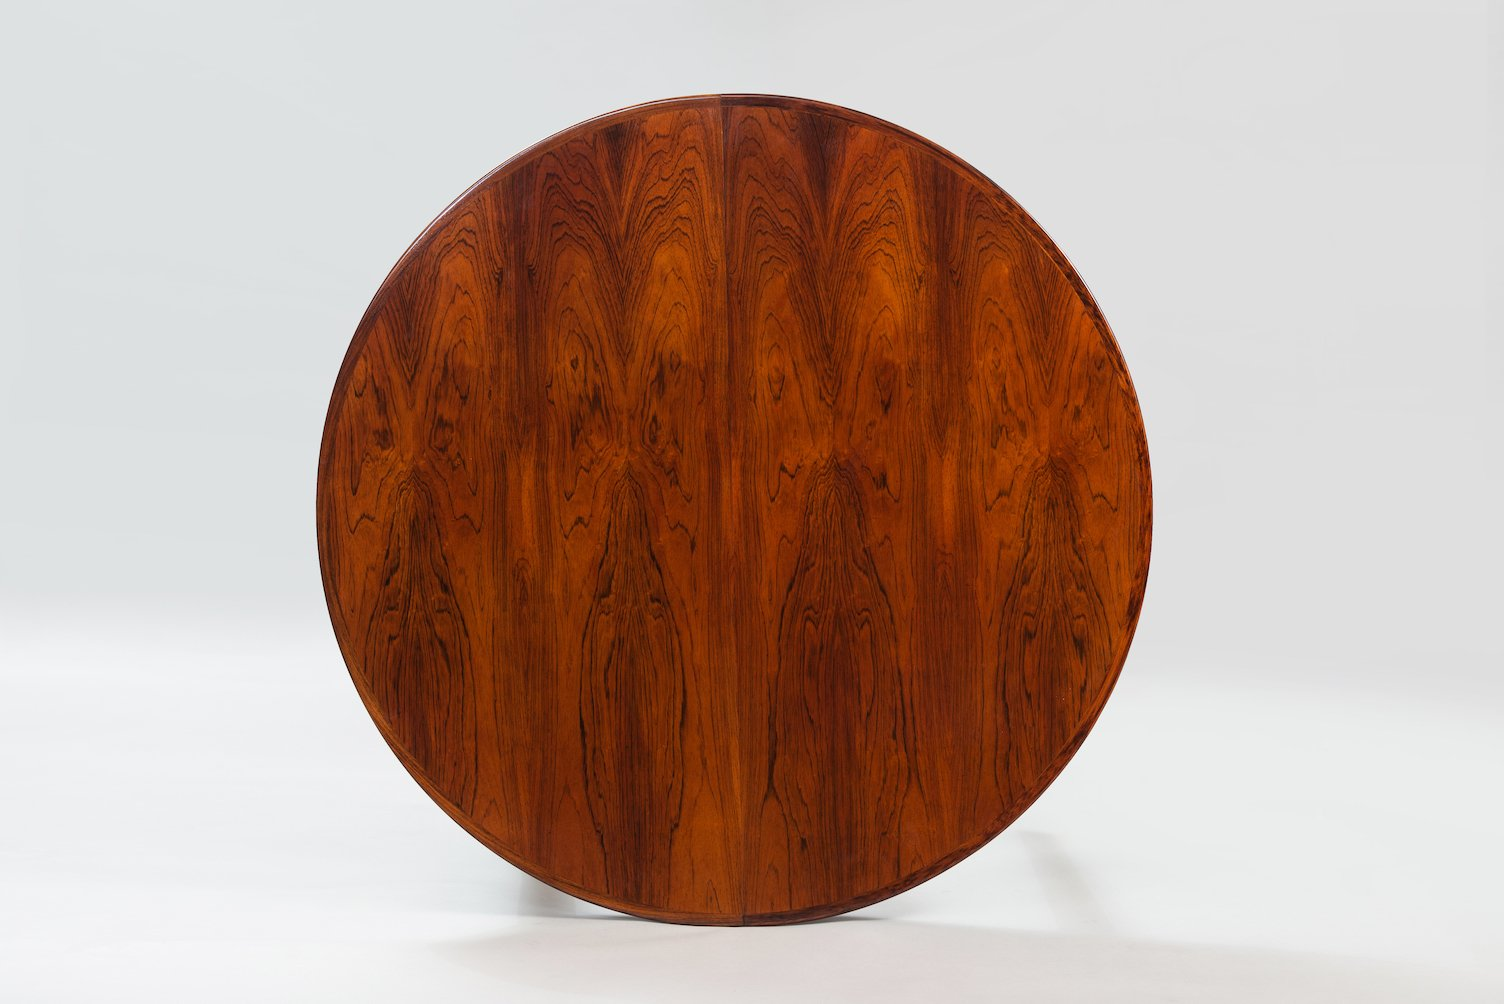 Rosewood Dining Table Vintage Rosewood Dining Table By Ole Hald For Sale At Pamono